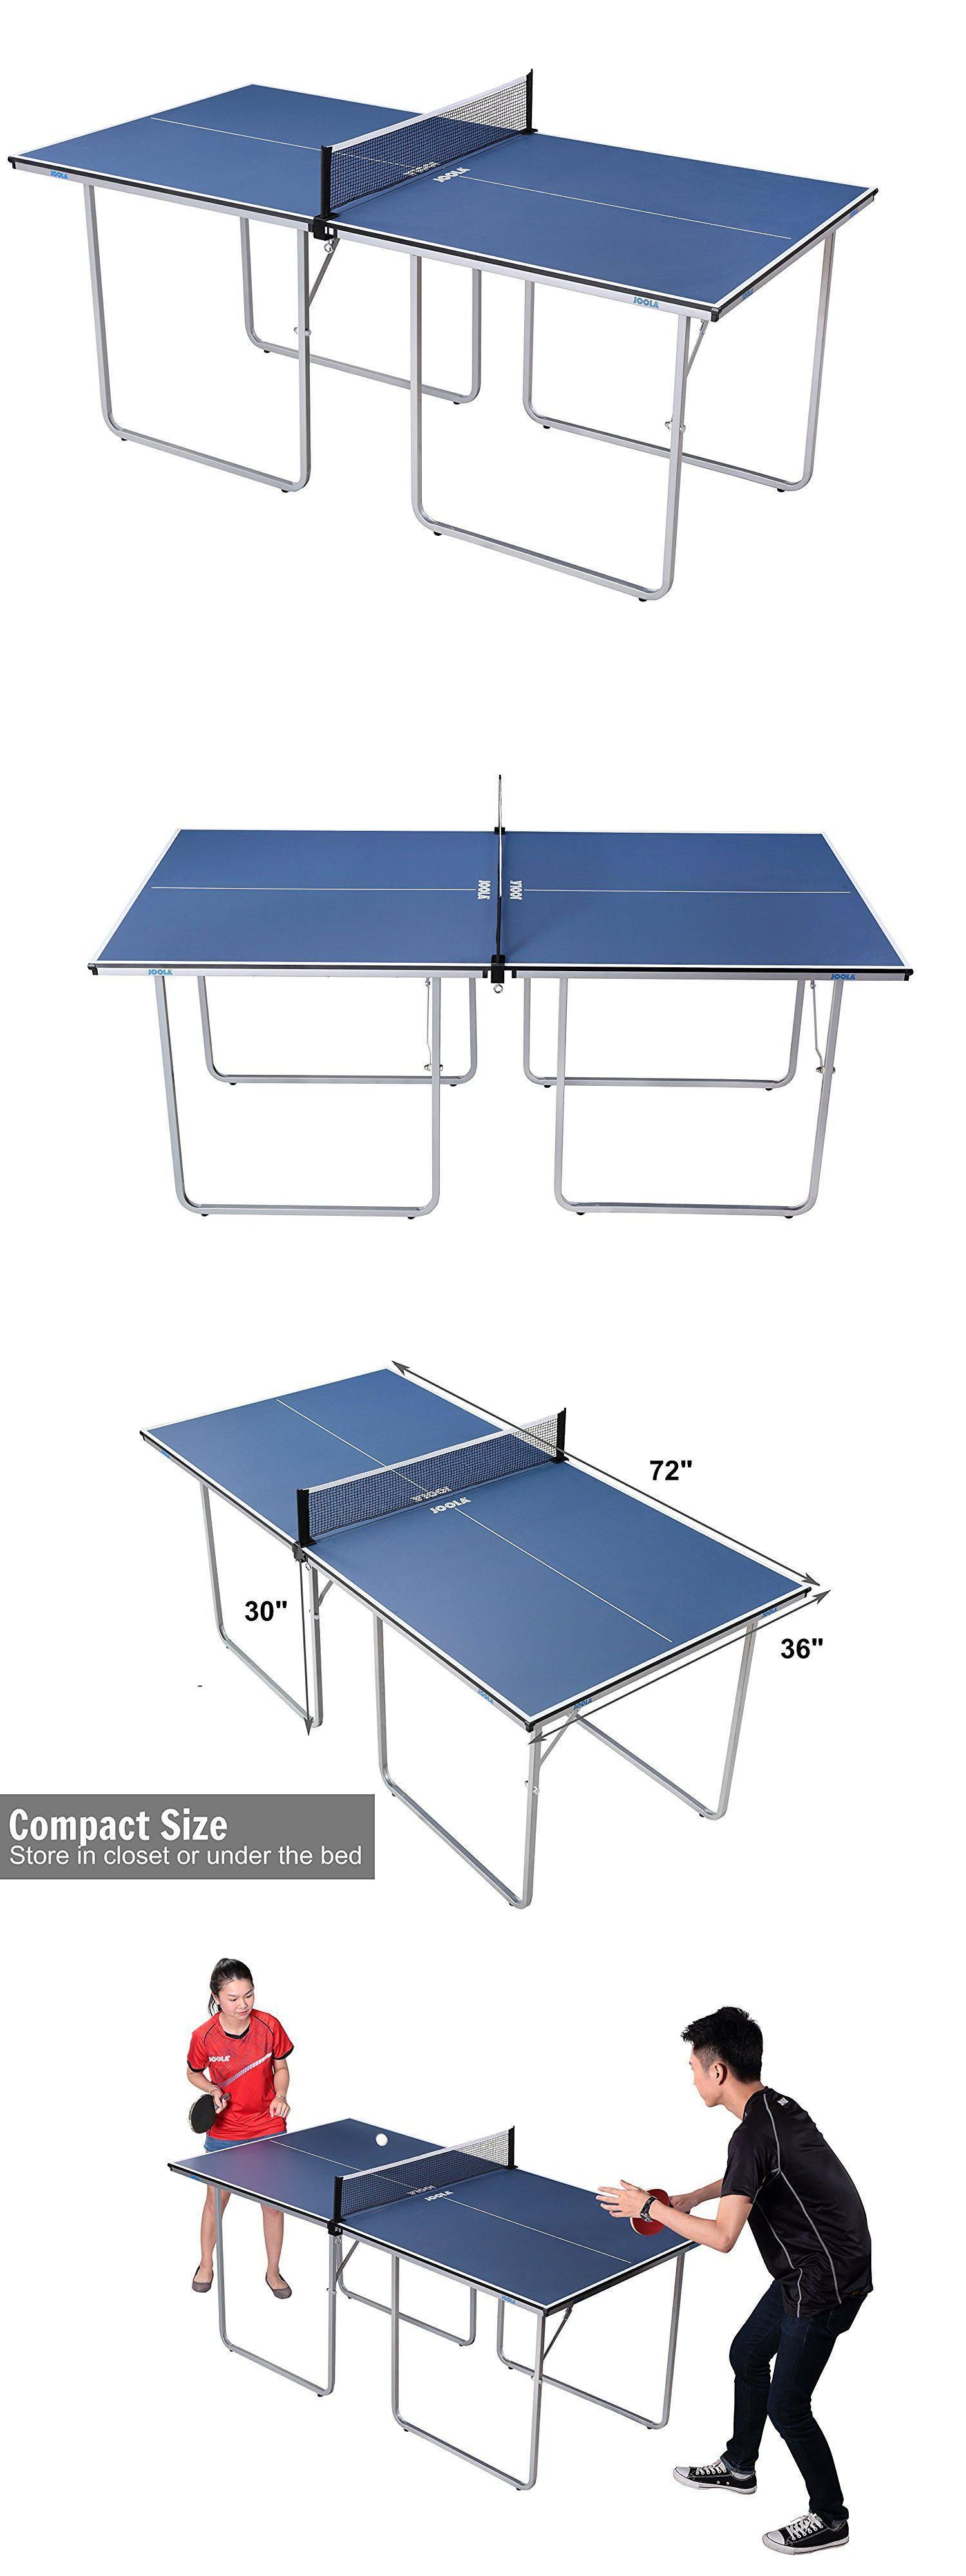 Tables 97075: Folding Table Tennis Midsize Ping Pong Table  U003e BUY IT NOW  ONLY